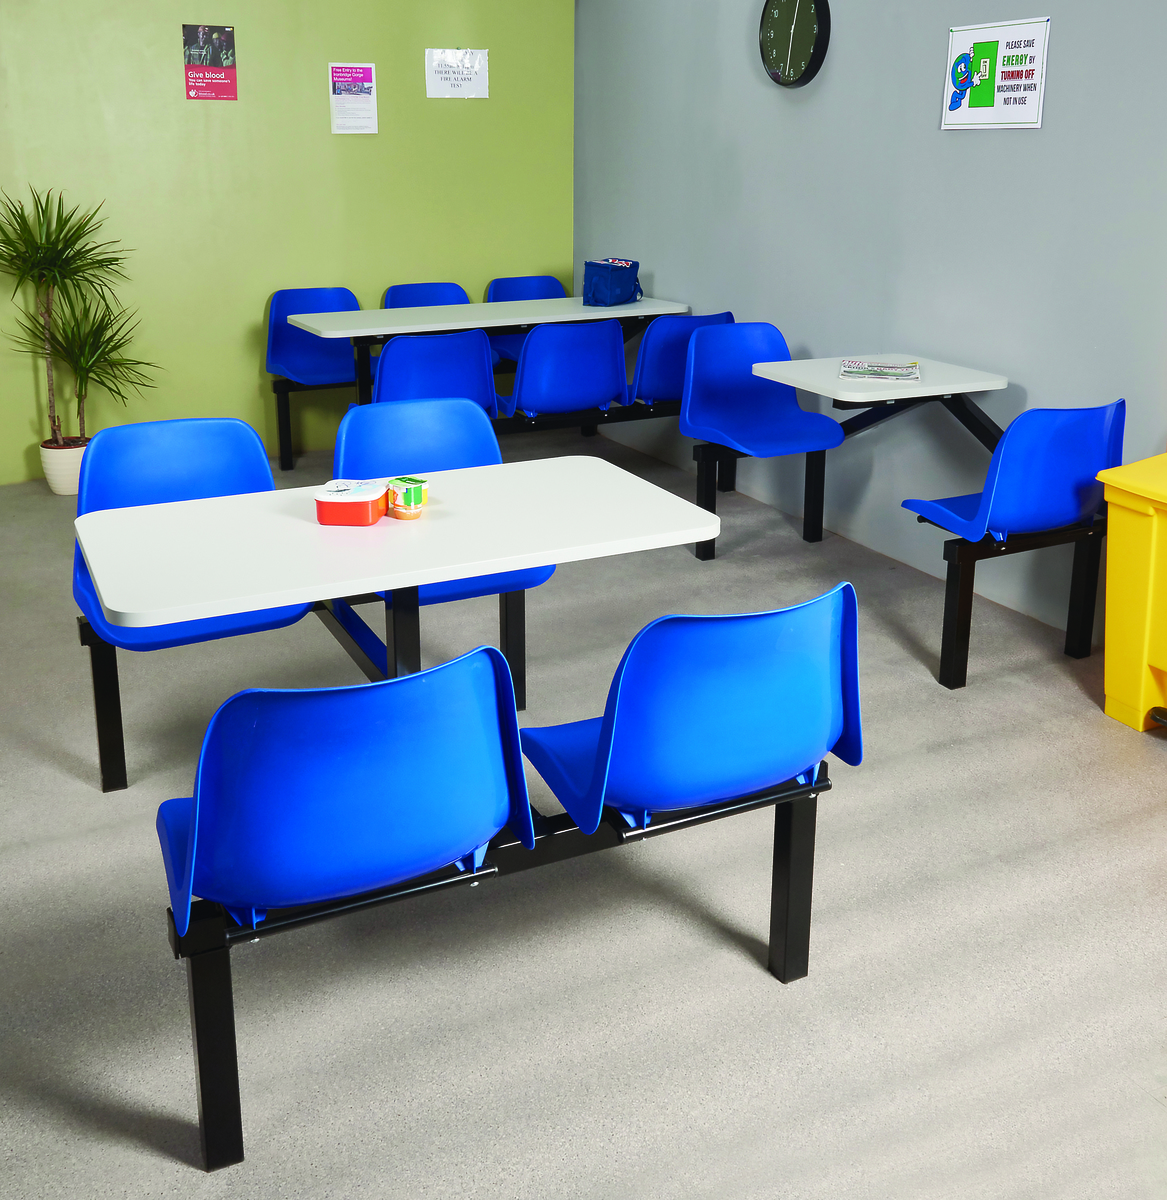 Standard canteen furniture  group shot